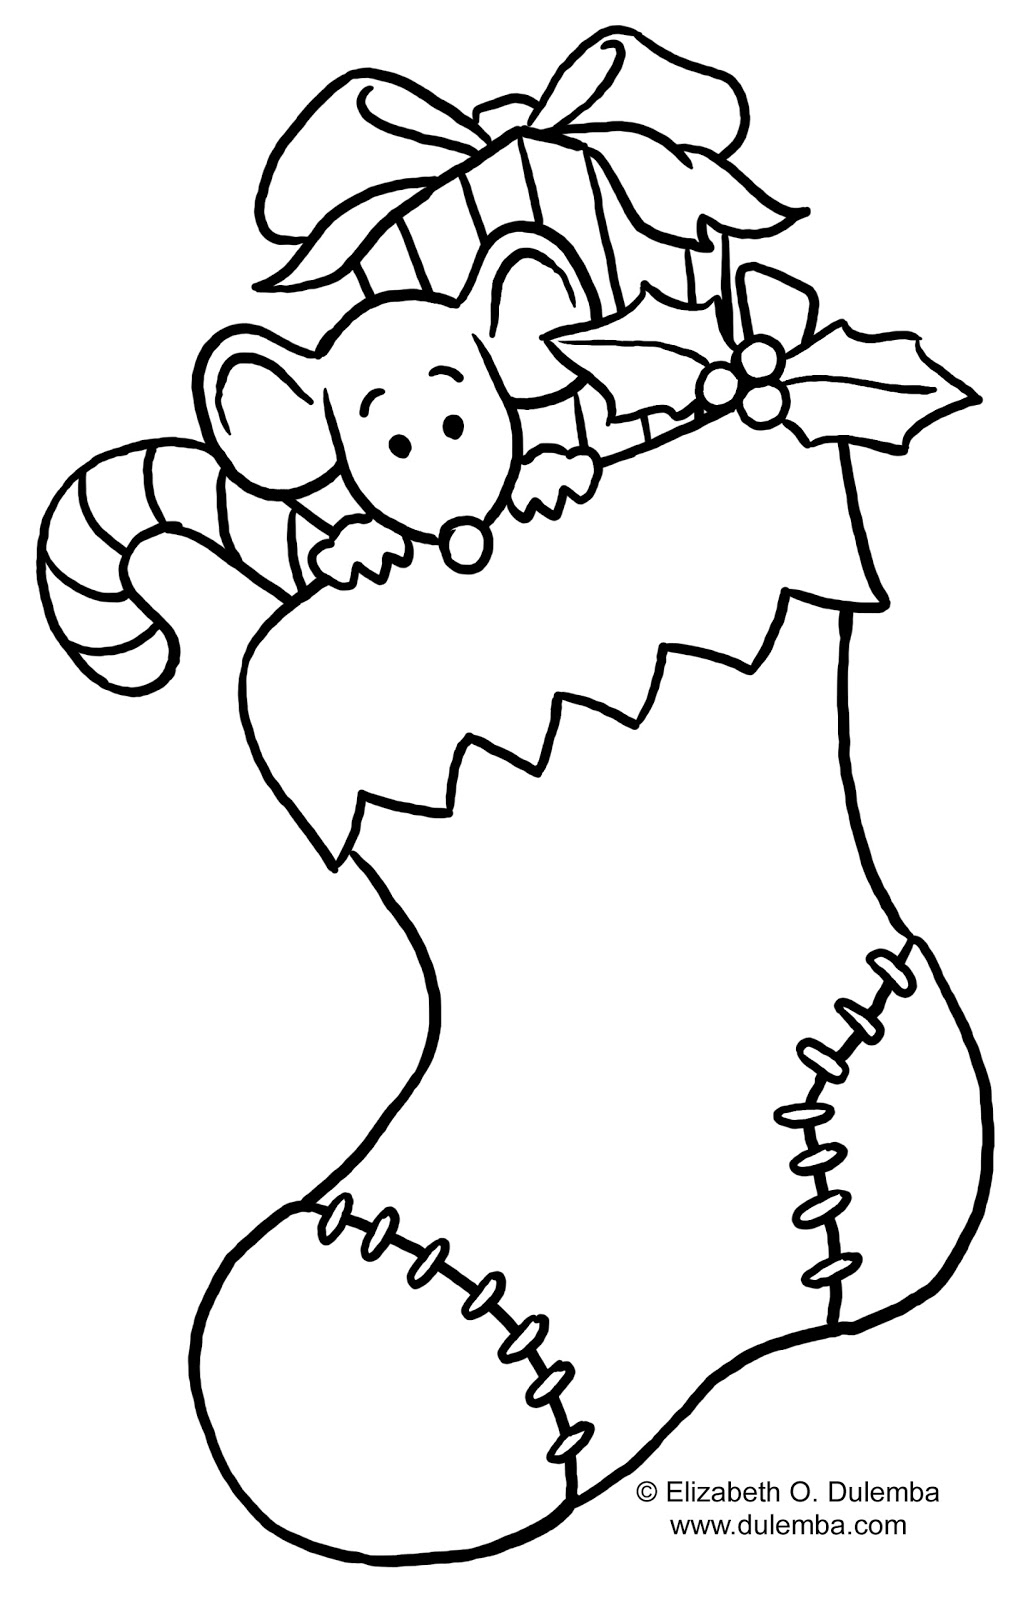 dltk kids christmas coloring pages - photo#31